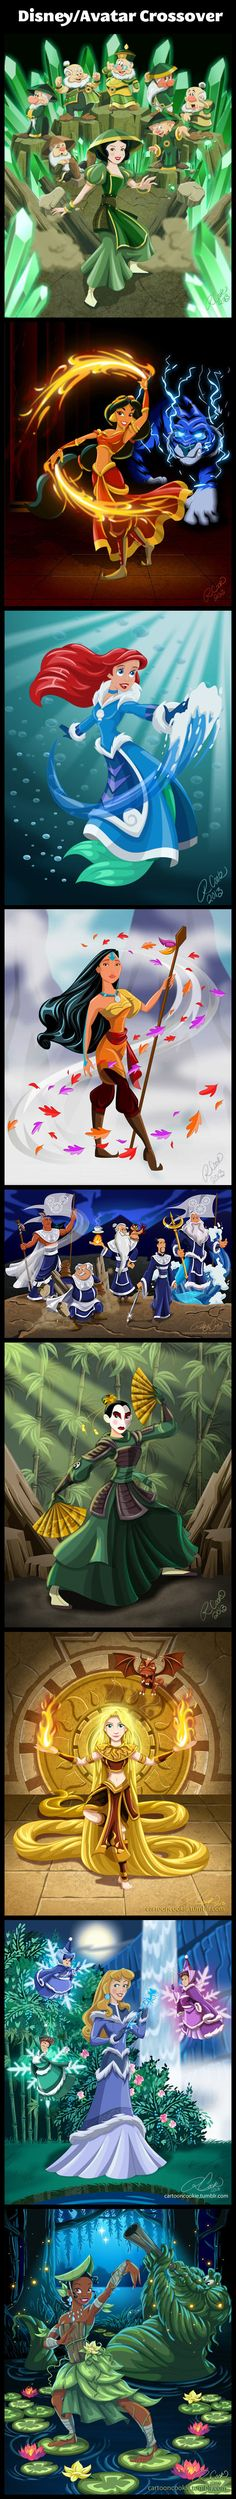 Disney/Avatar Crossover… @Jess Pearl Liu Vena | @Laura Jayson Jayson Crum | @Sharron Simmons Simmons Reyes | @Danese Smithson Smithson Perkins<--------OMG!!!! AWESOME!!!!!!!!!!!!!!!!!!!!!!!!!